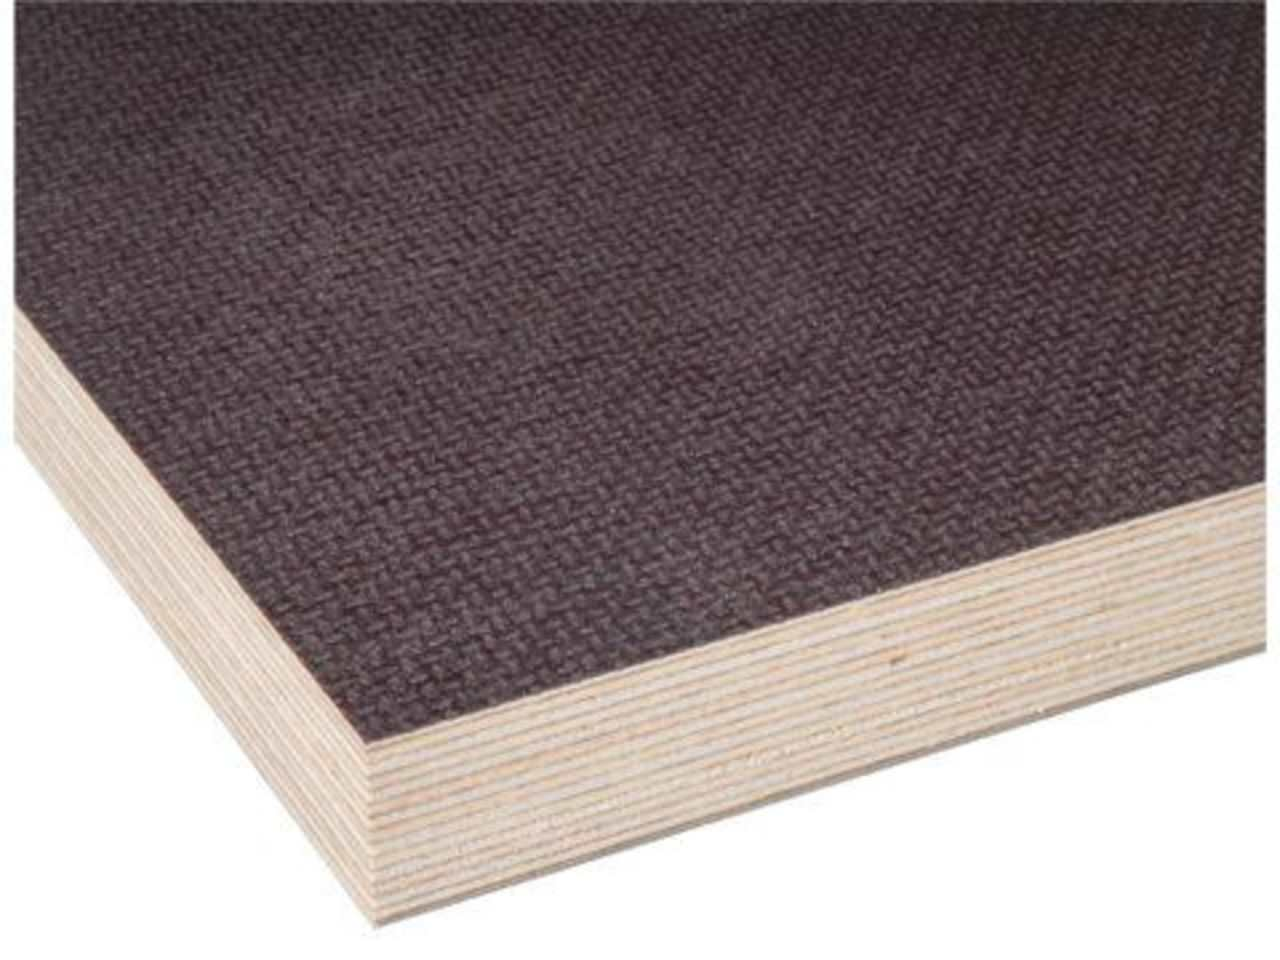 Ifor Williams Bv84g Phenolic Plywood Floor